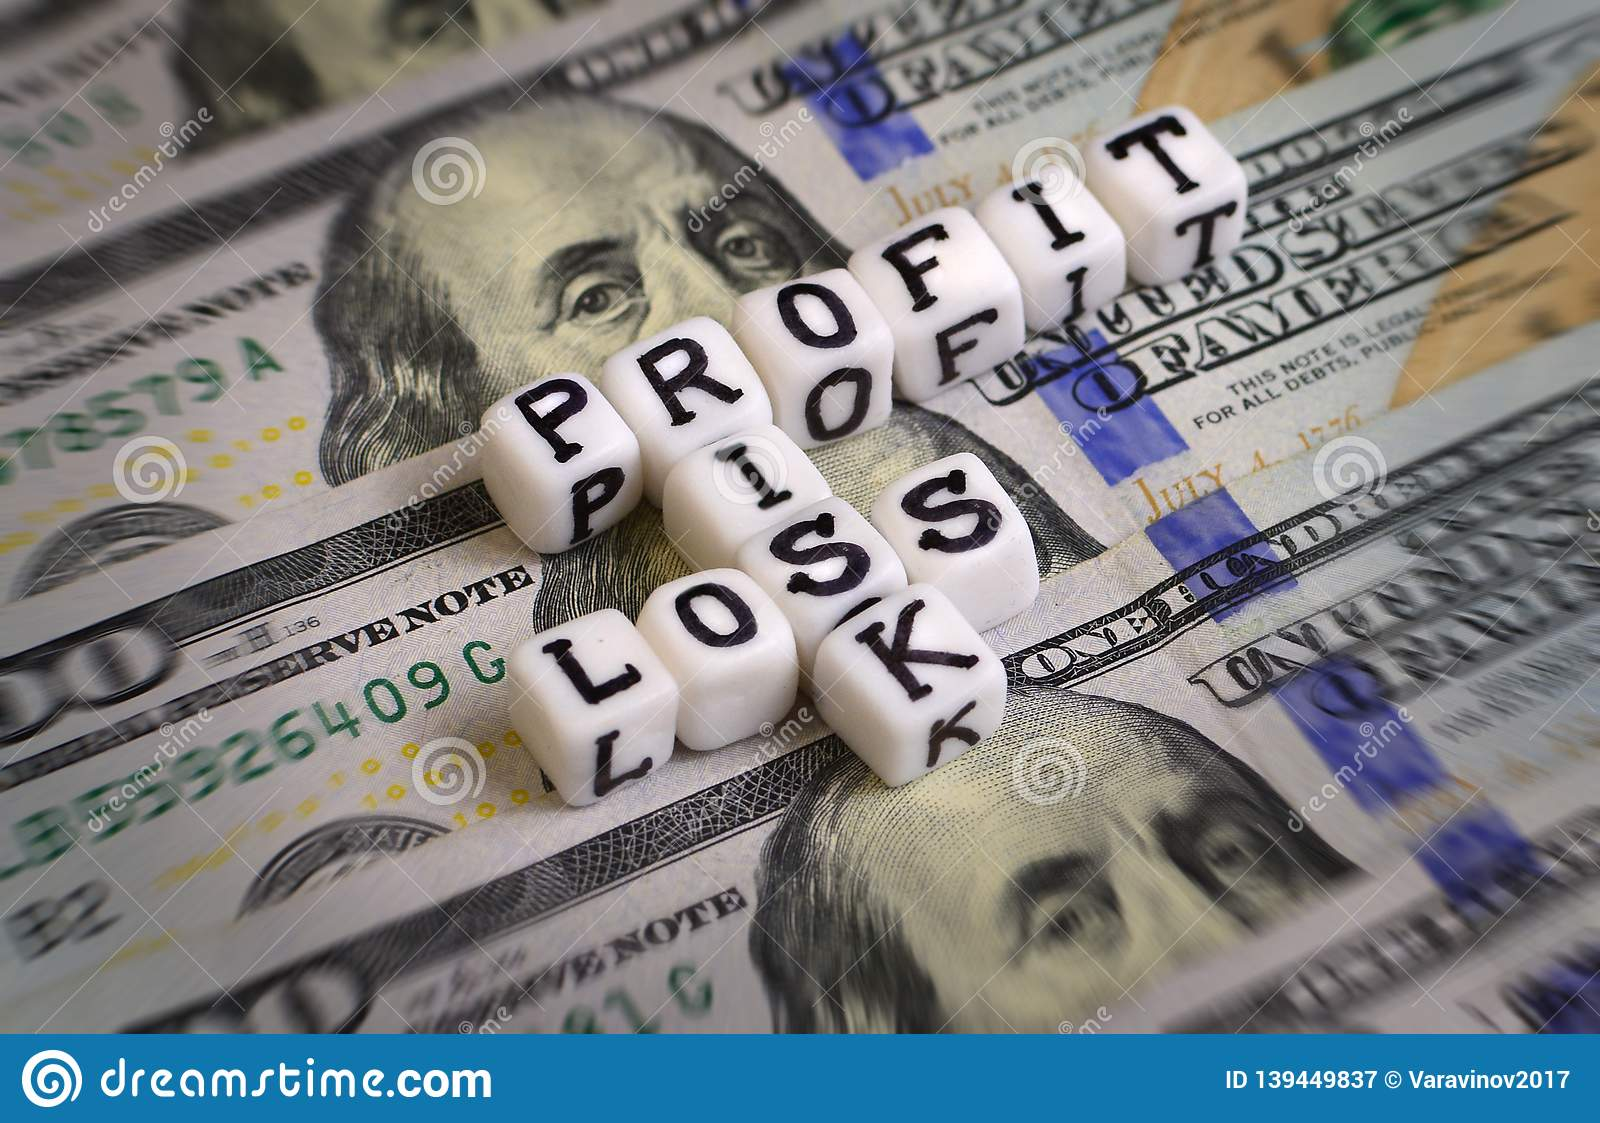 Profit or Loss, or Risk concept with letter cubes on a dollar bank notes.